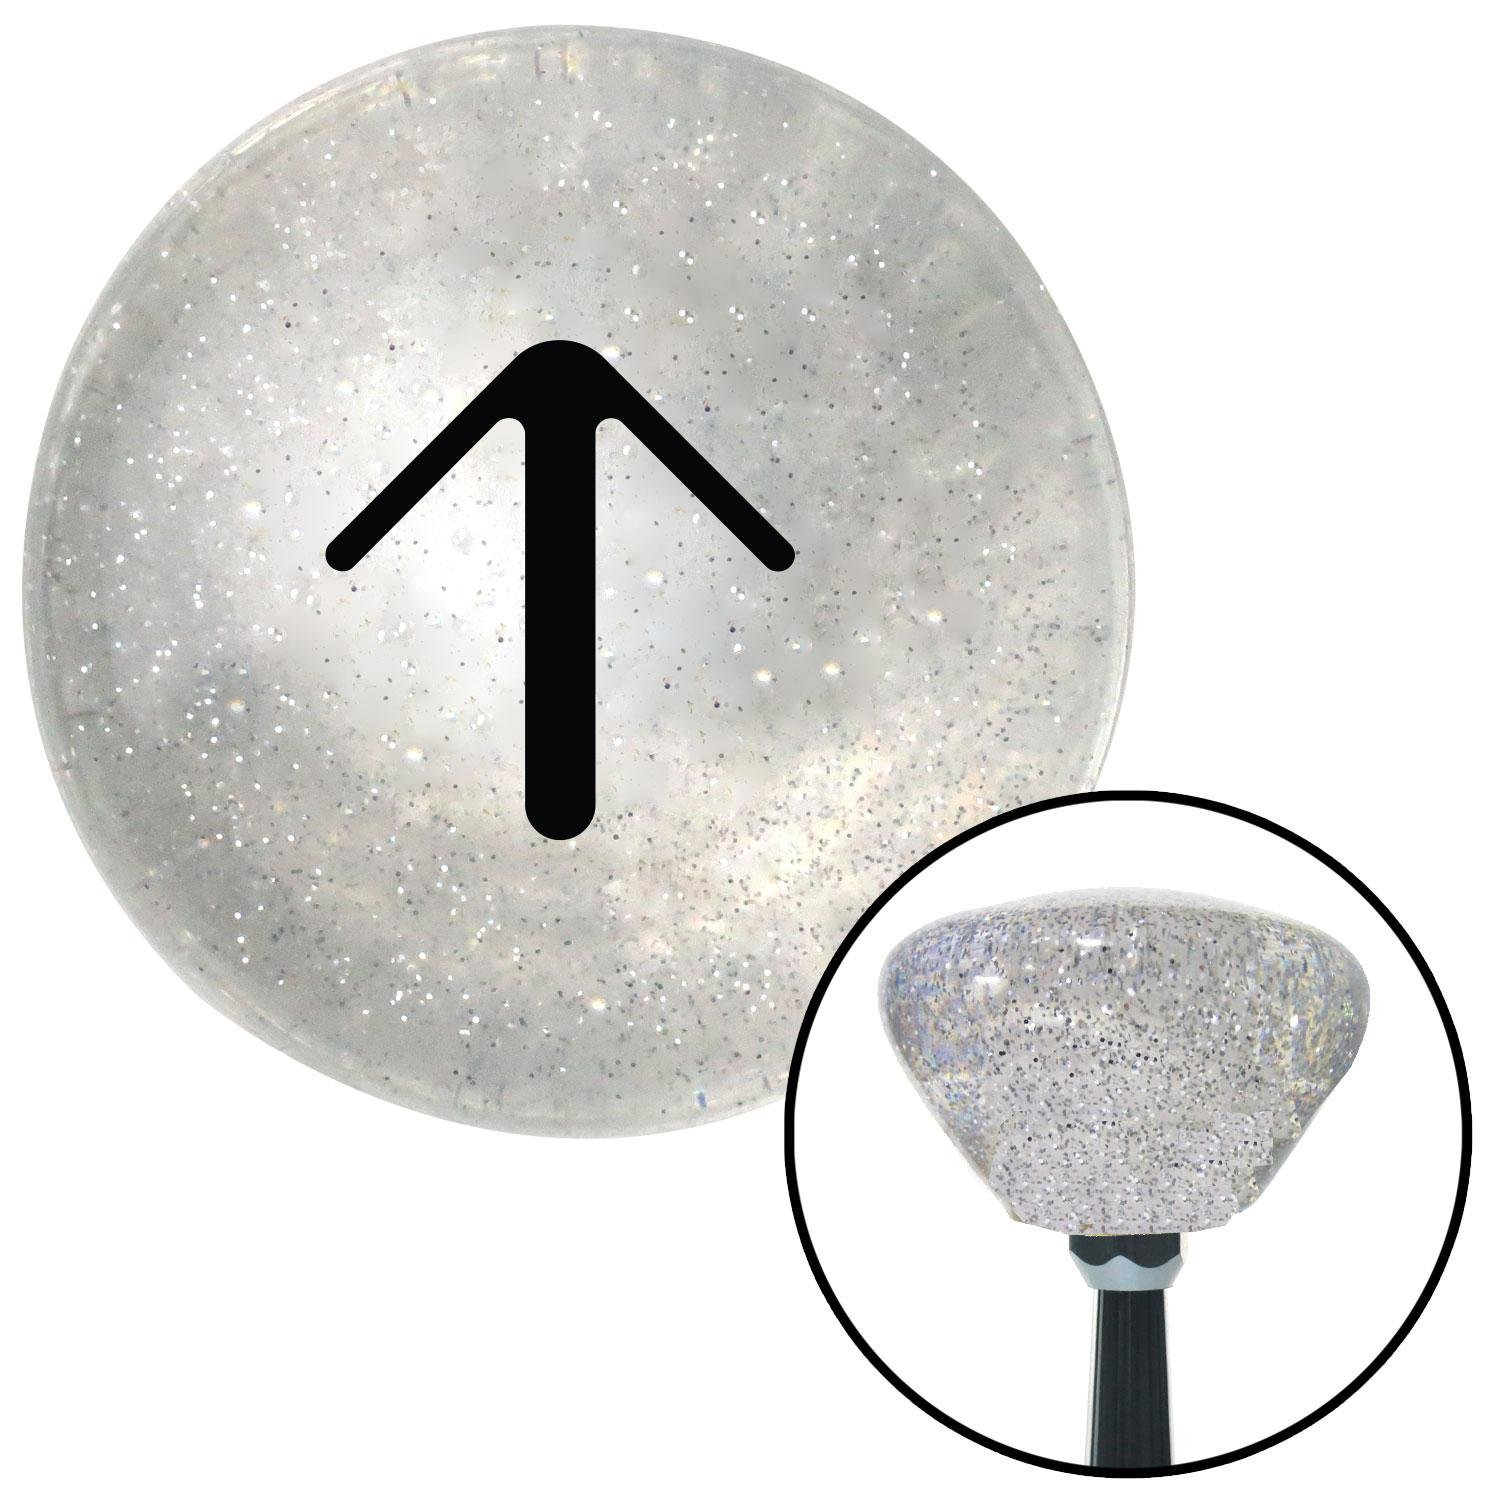 American Shifter 160114 Clear Retro Metal Flake Shift Knob with M16 x 1.5 Insert Black Solid Pointing Arrow Up